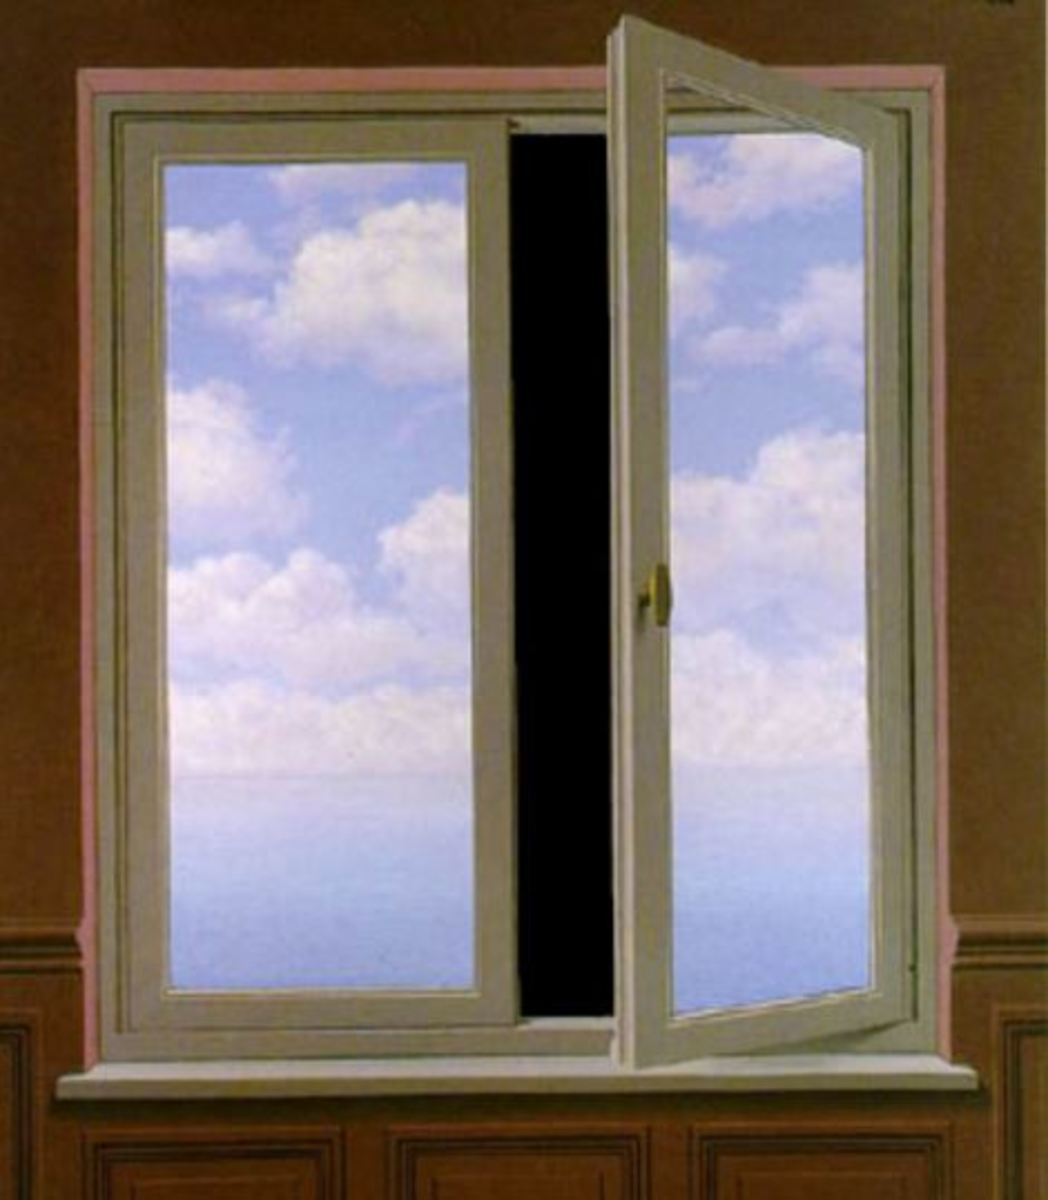 The Telescope, by Rene Magritte (1898-1967)